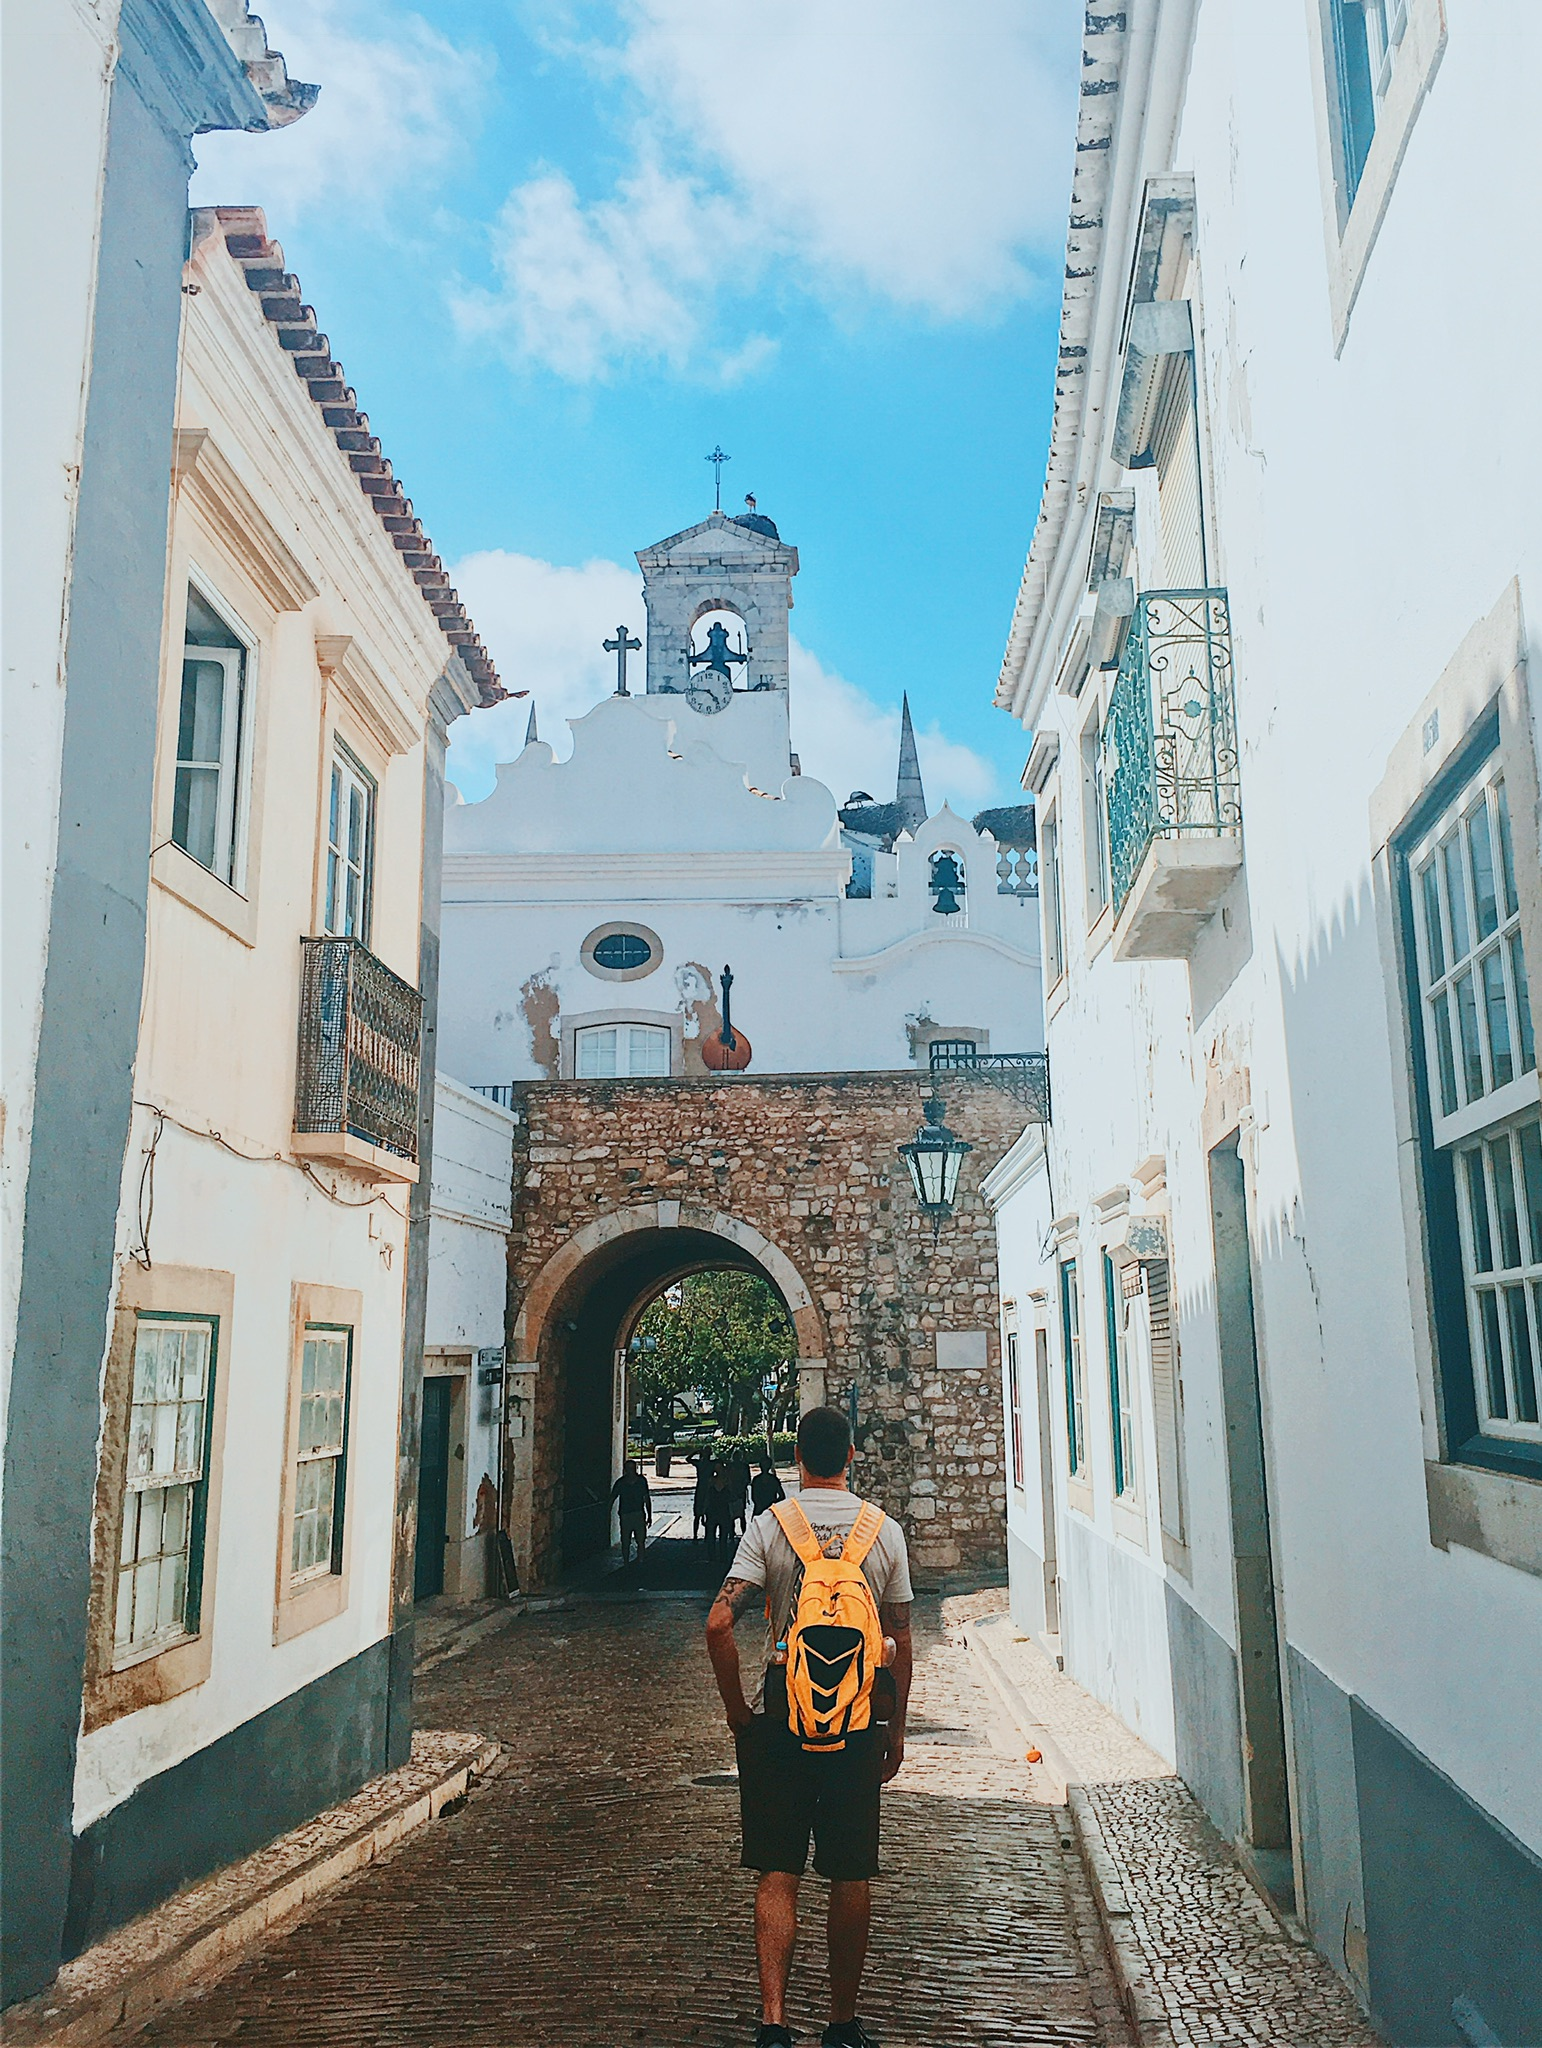 Charming Faro streets: can you see the stork standing on a nest by the bell tower?